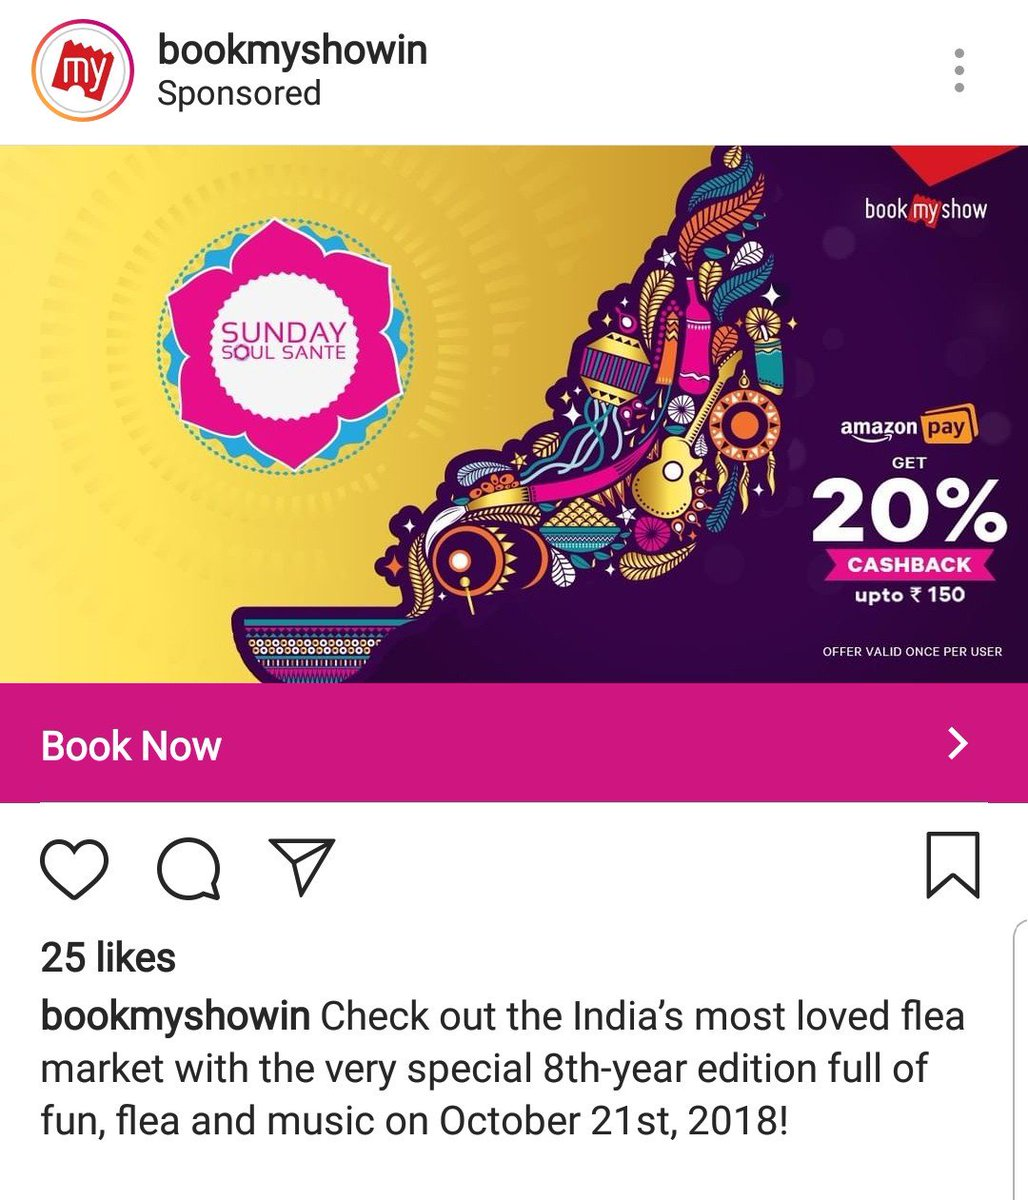 When a digital marketer forget to stop the ad or schedule the end time of an ad this is what happens 😀😀  @bookmyshow please stop the ad as the event is over.